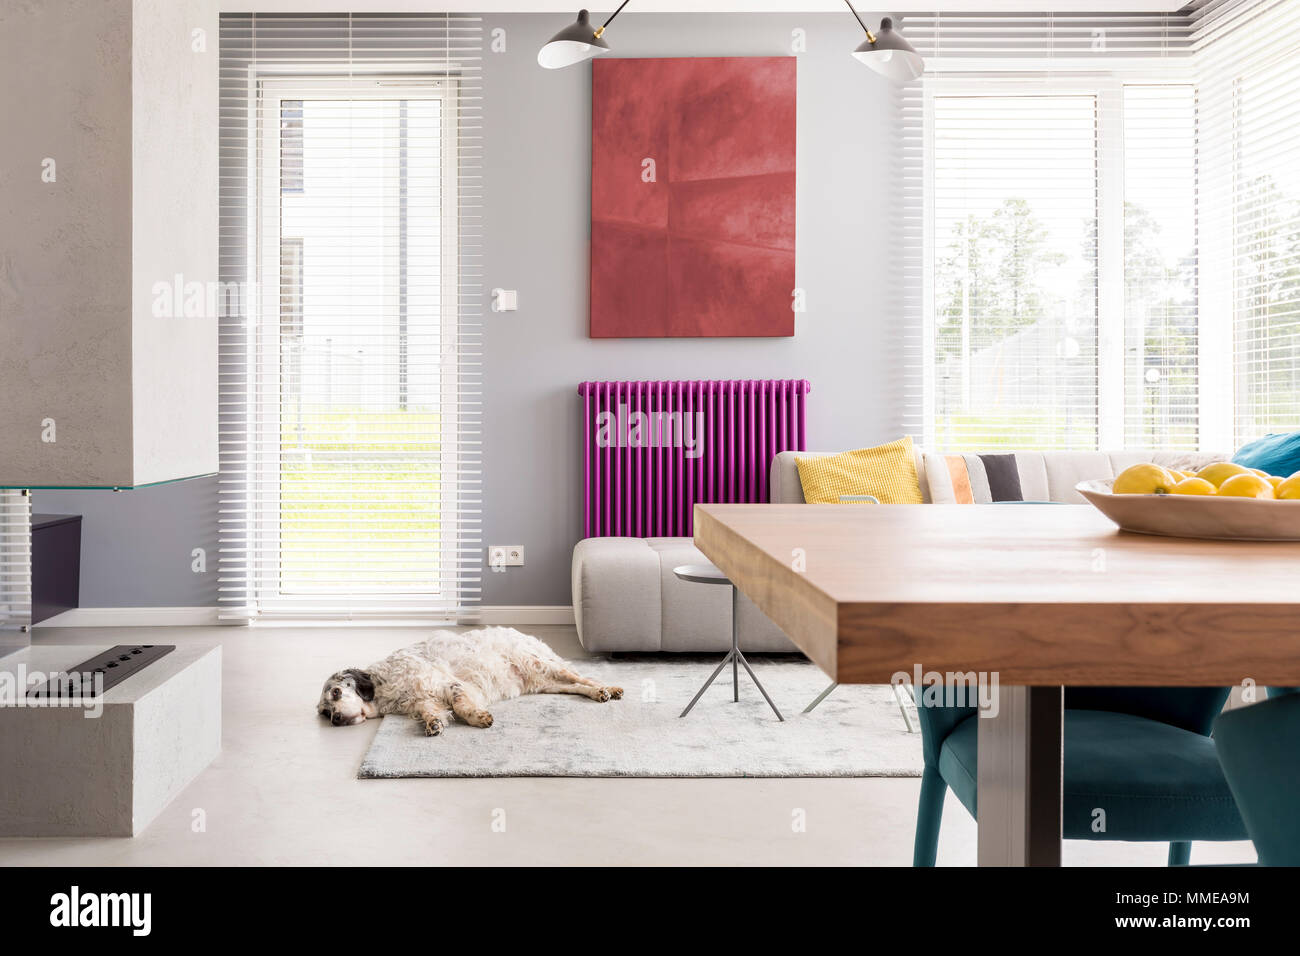 Light Beige Couch, Table, Fireplace, Artwork, Bright Windows And Purple  Accent In Contemporary Living Room With Dog Sleeping On The Rug